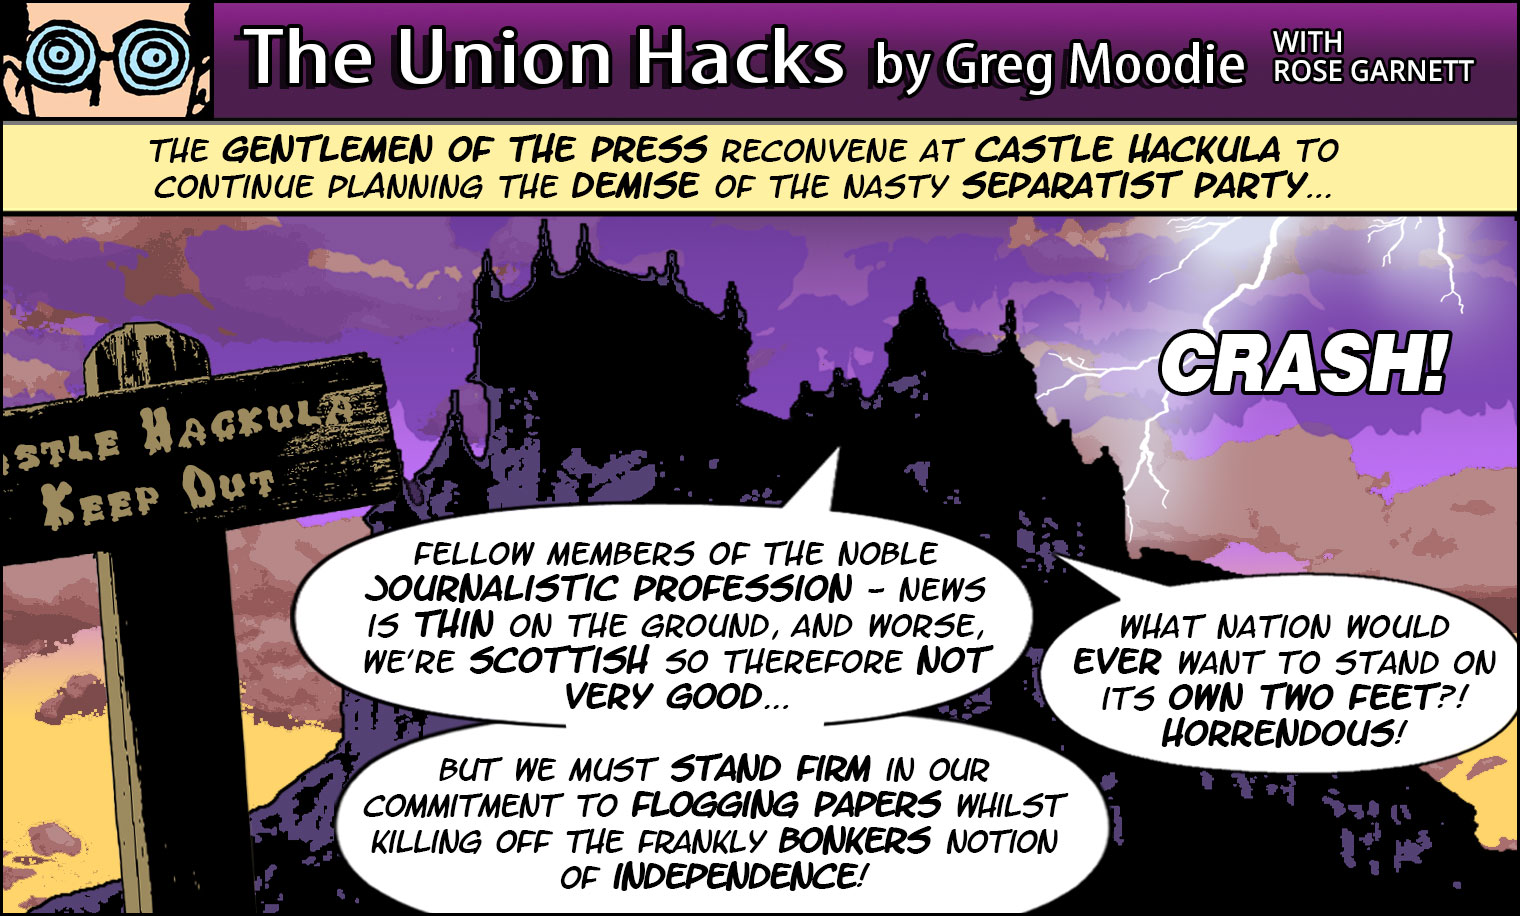 The Union Hacks